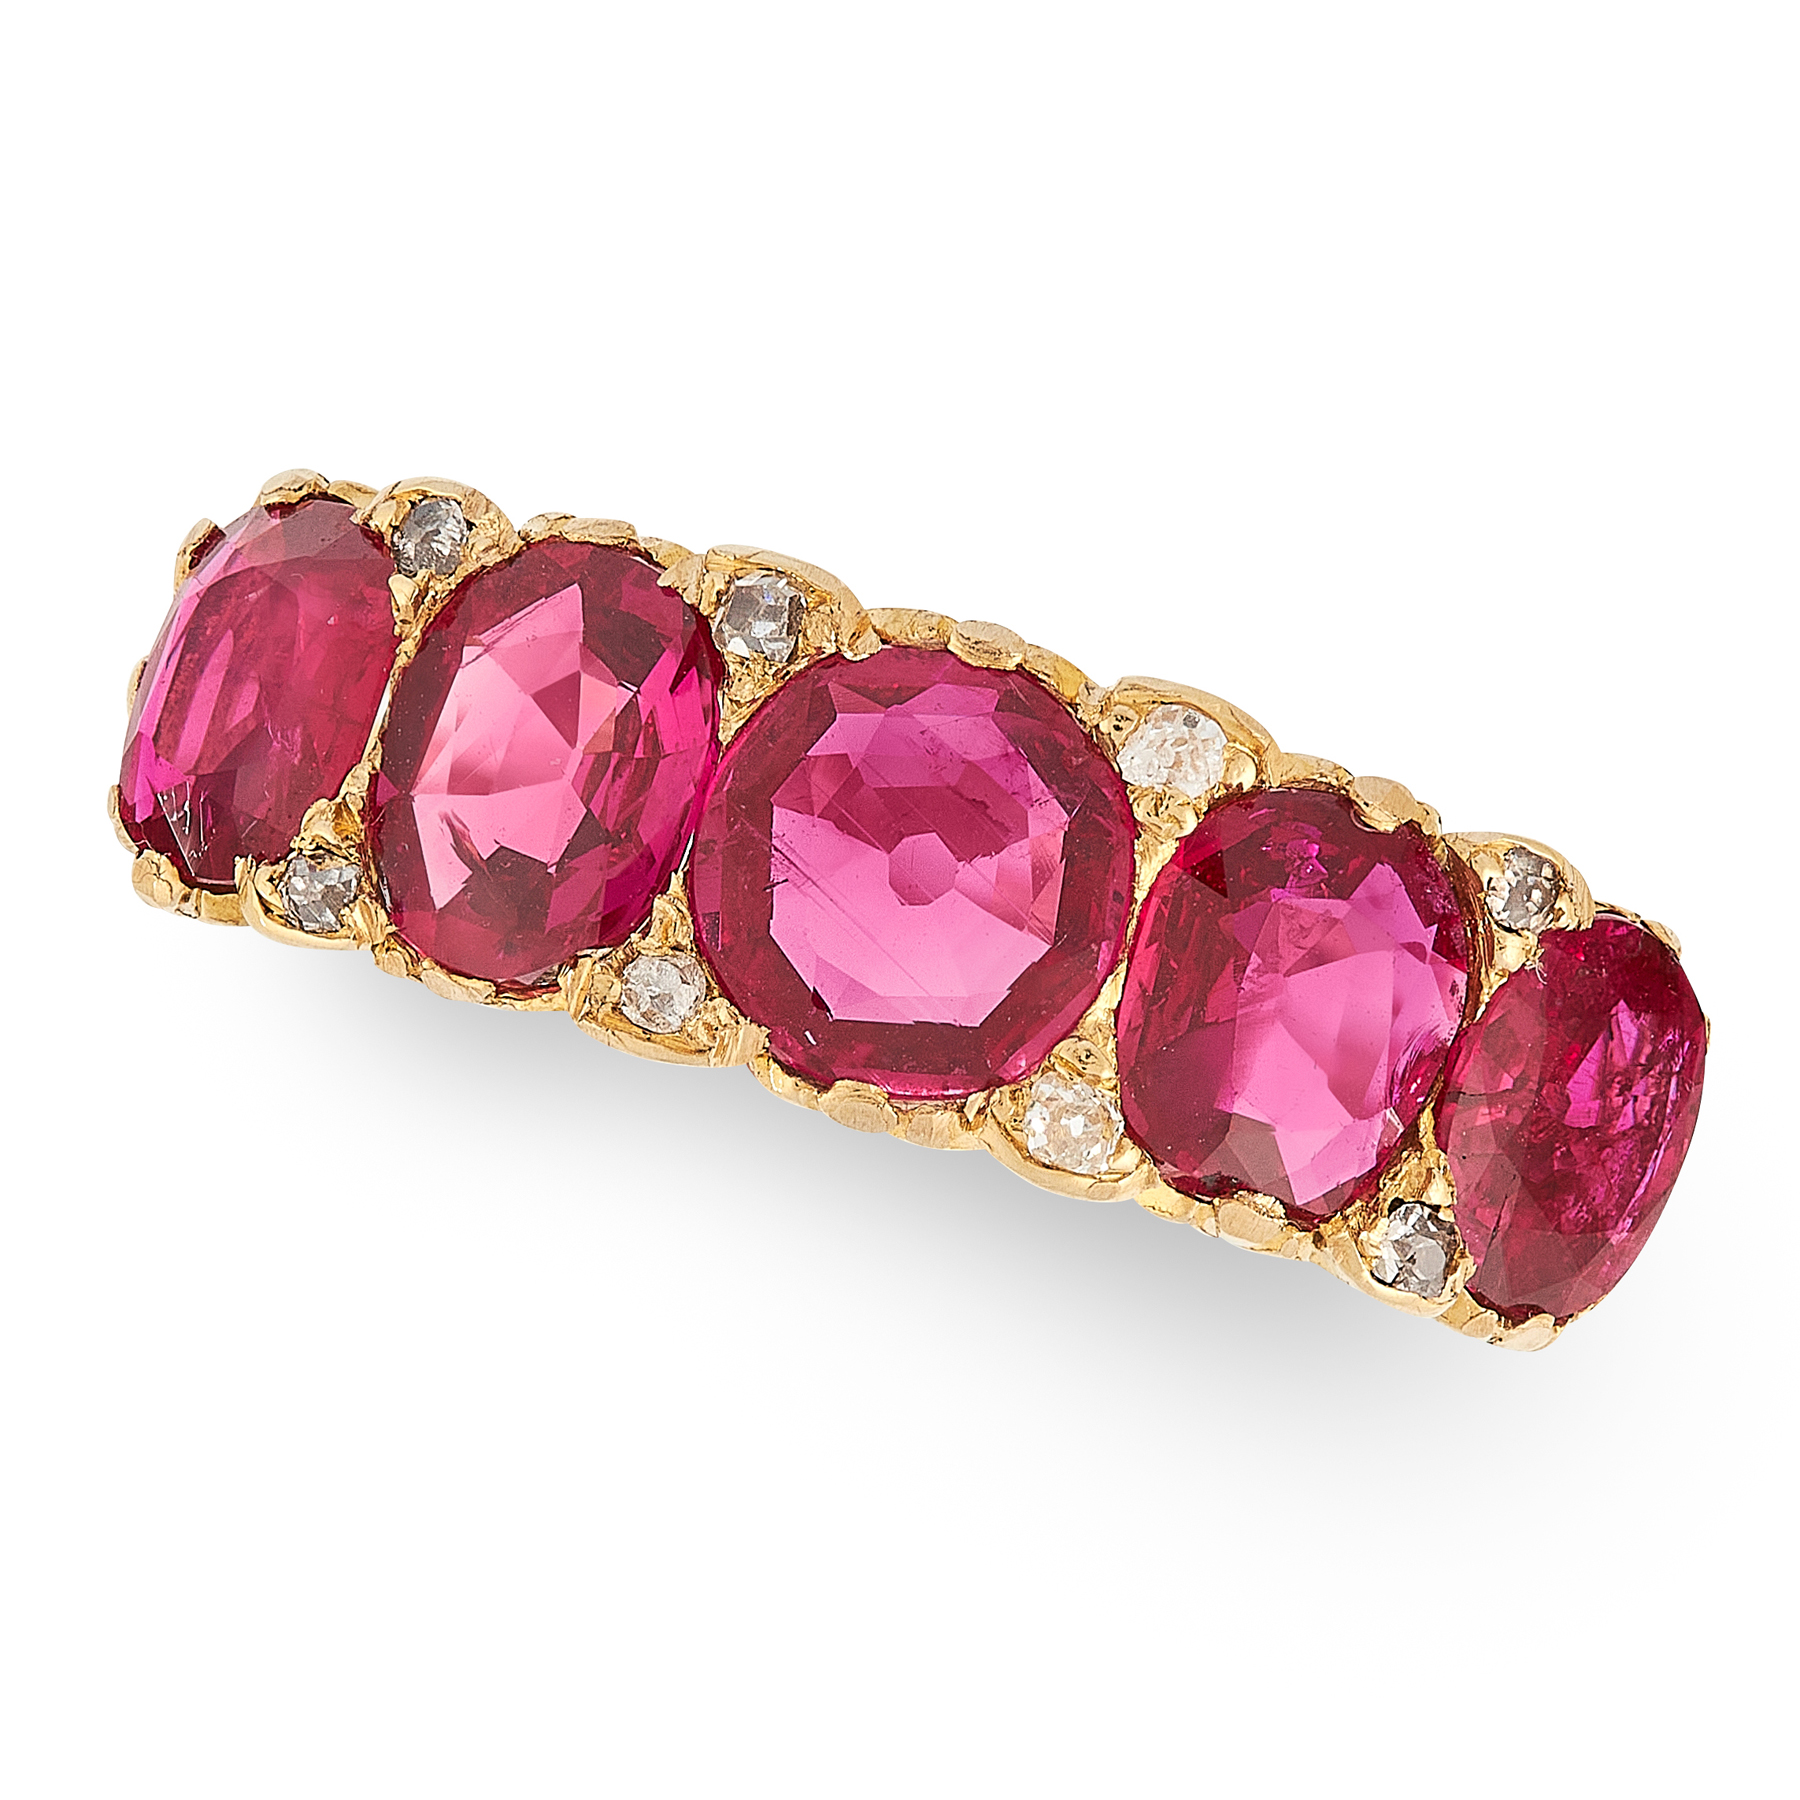 AN ANTIQUE EDWARDIAN RUBY AND DIAMOND FIVE STONE RING in 18ct yellow gold, set with five round and